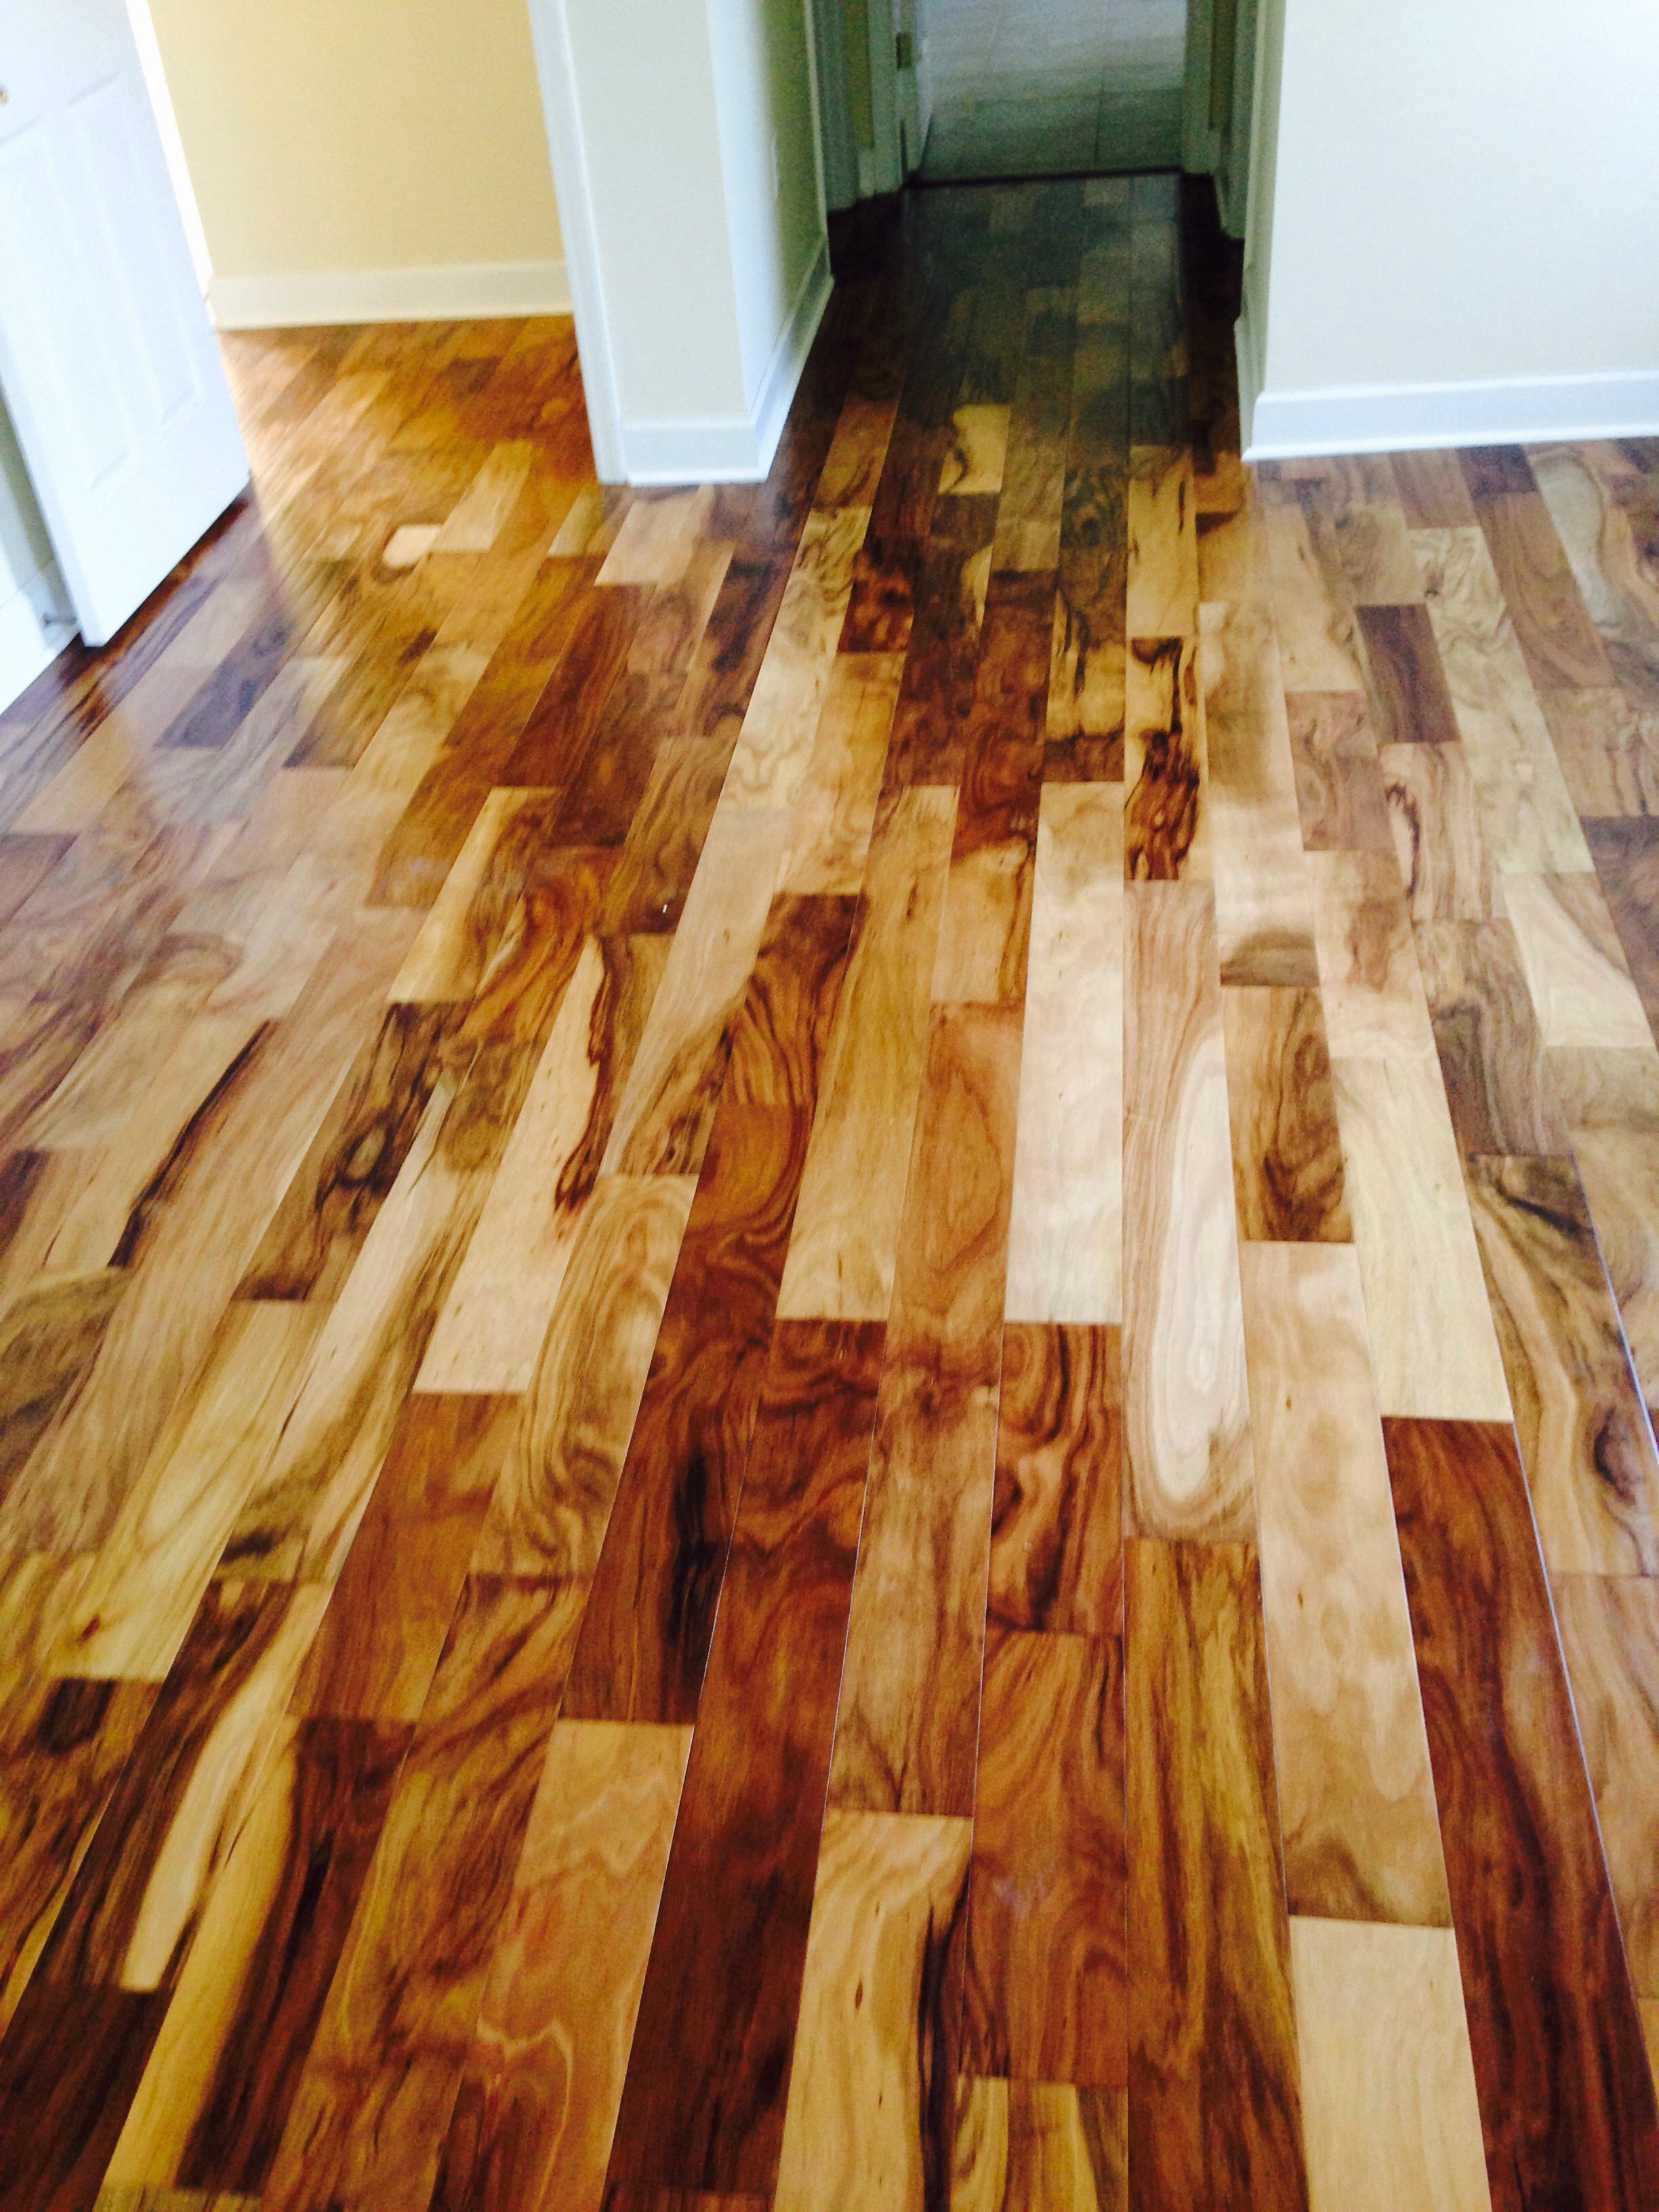 Dark And Light Wood Floor Basement ProSource Wholesale - Light or dark wood flooring